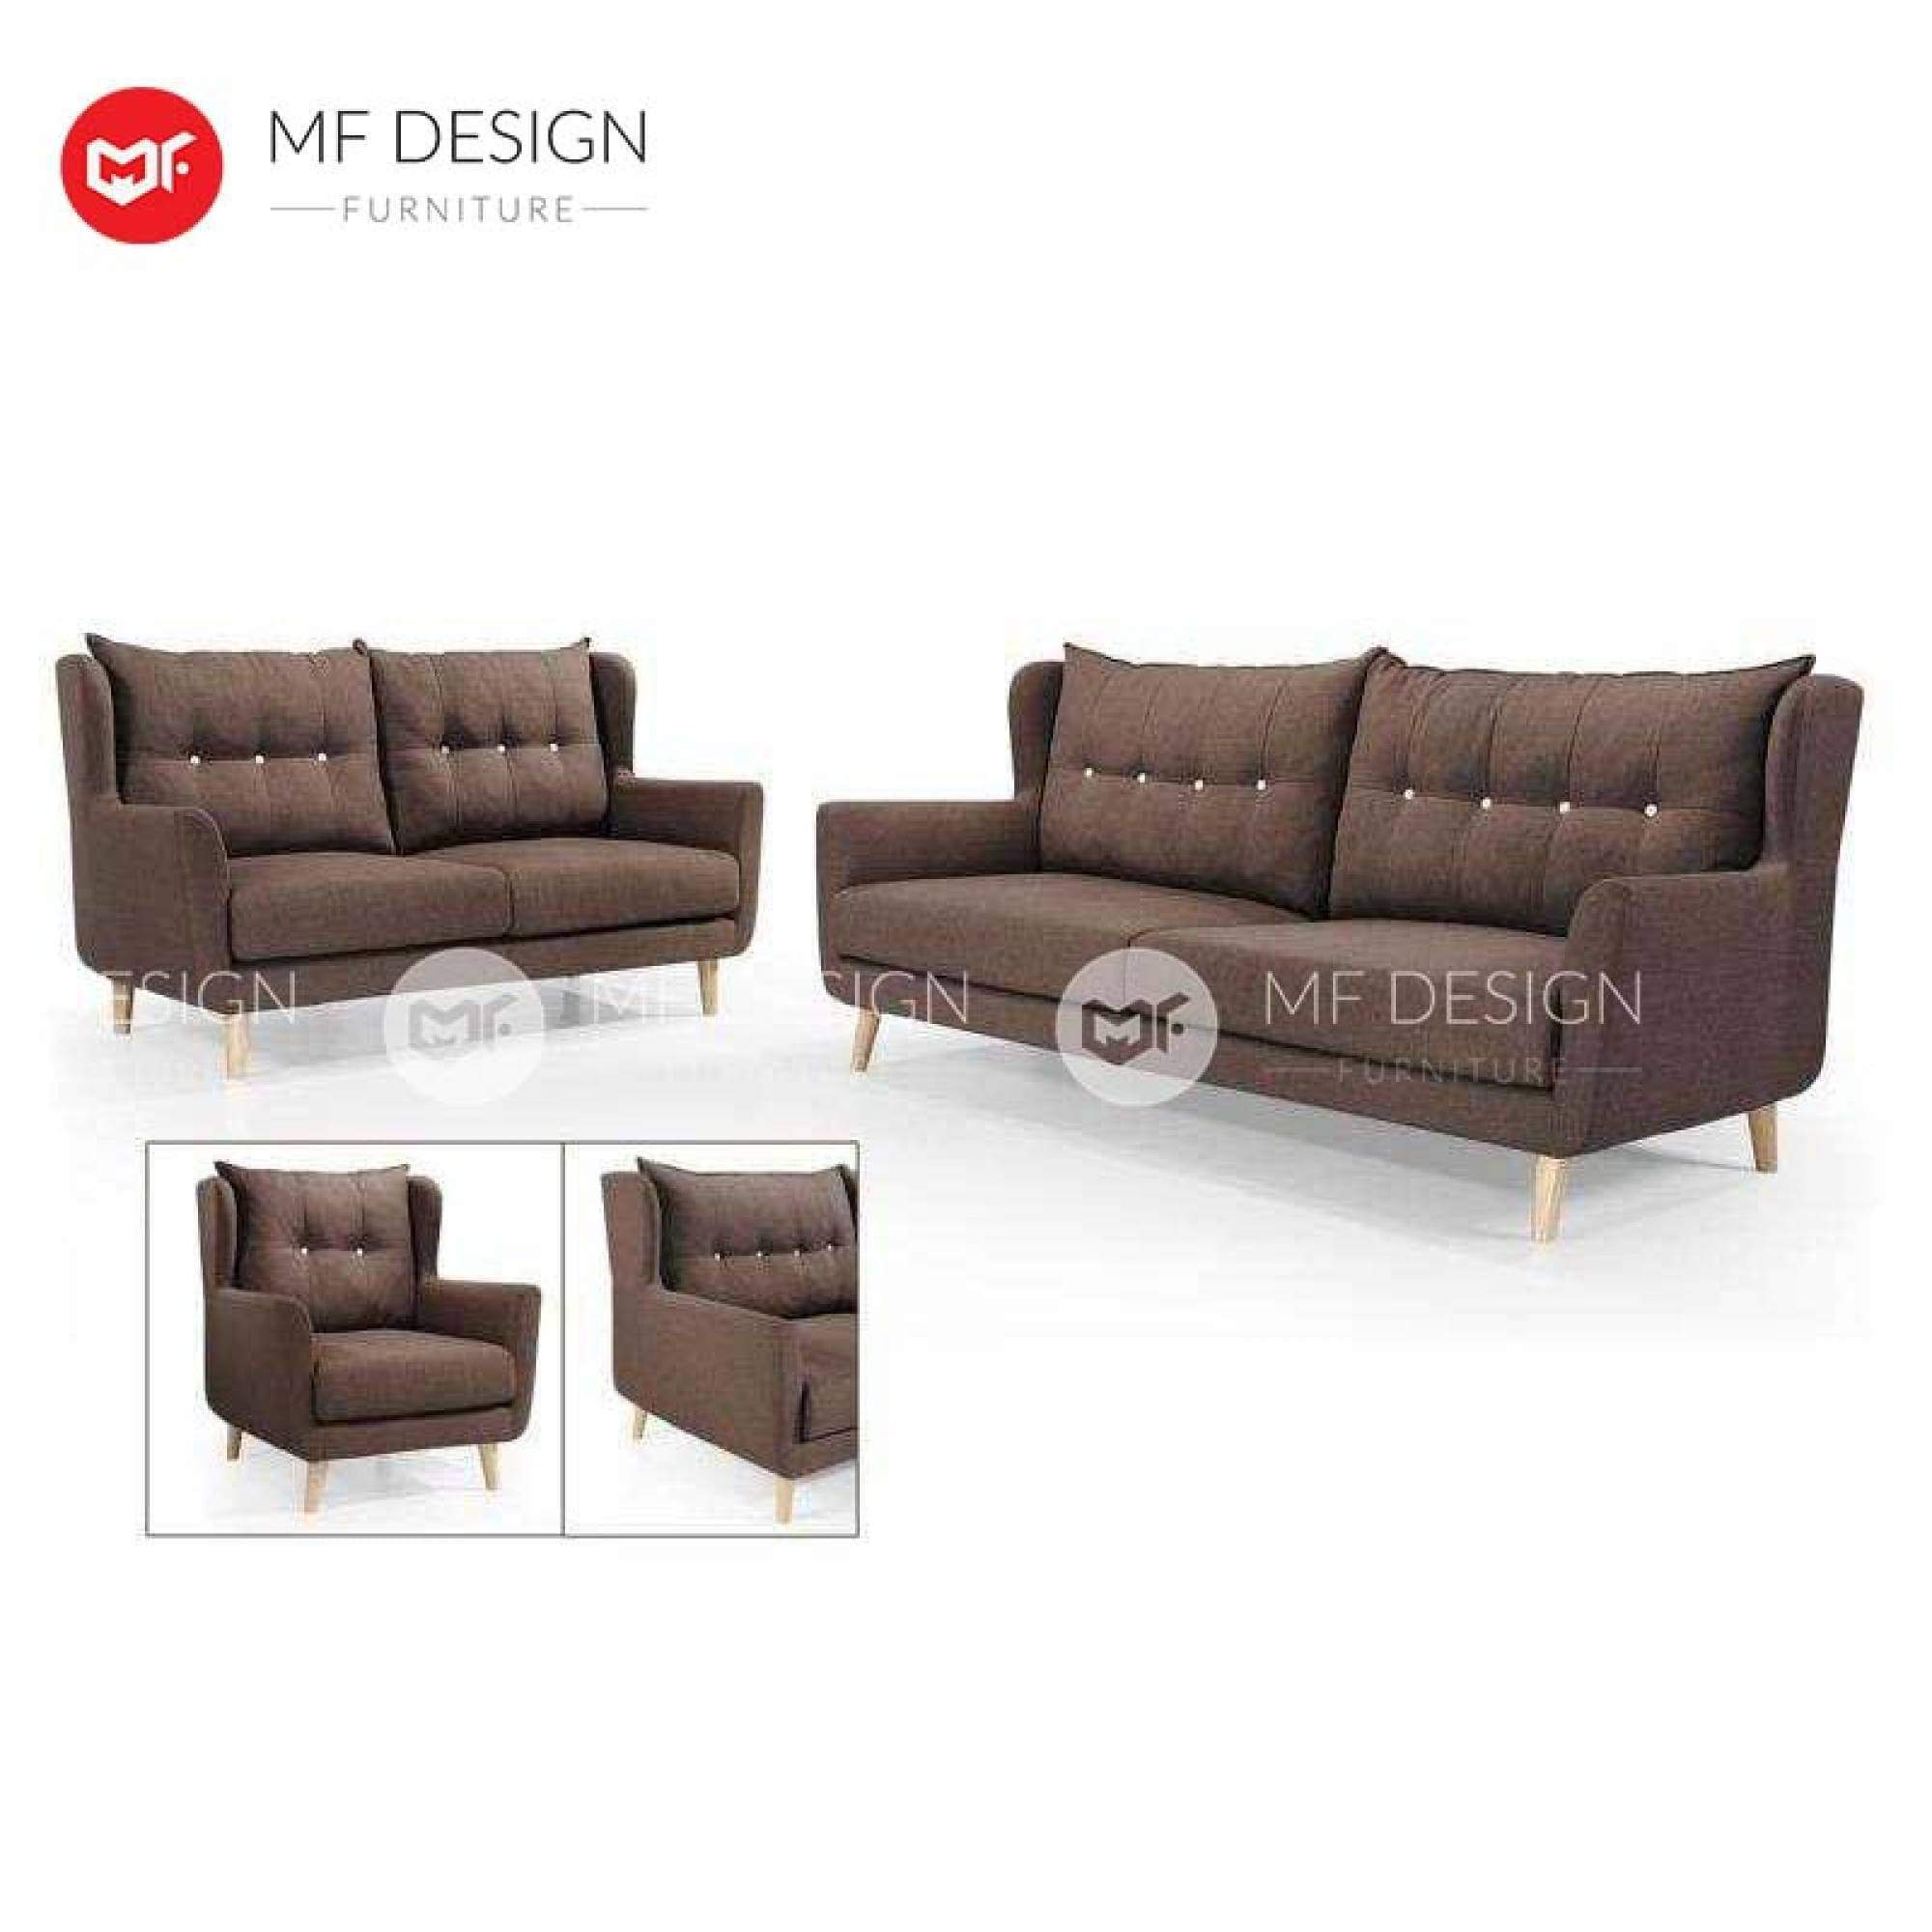 mfdesign88 Sofa Leo Sofa Set